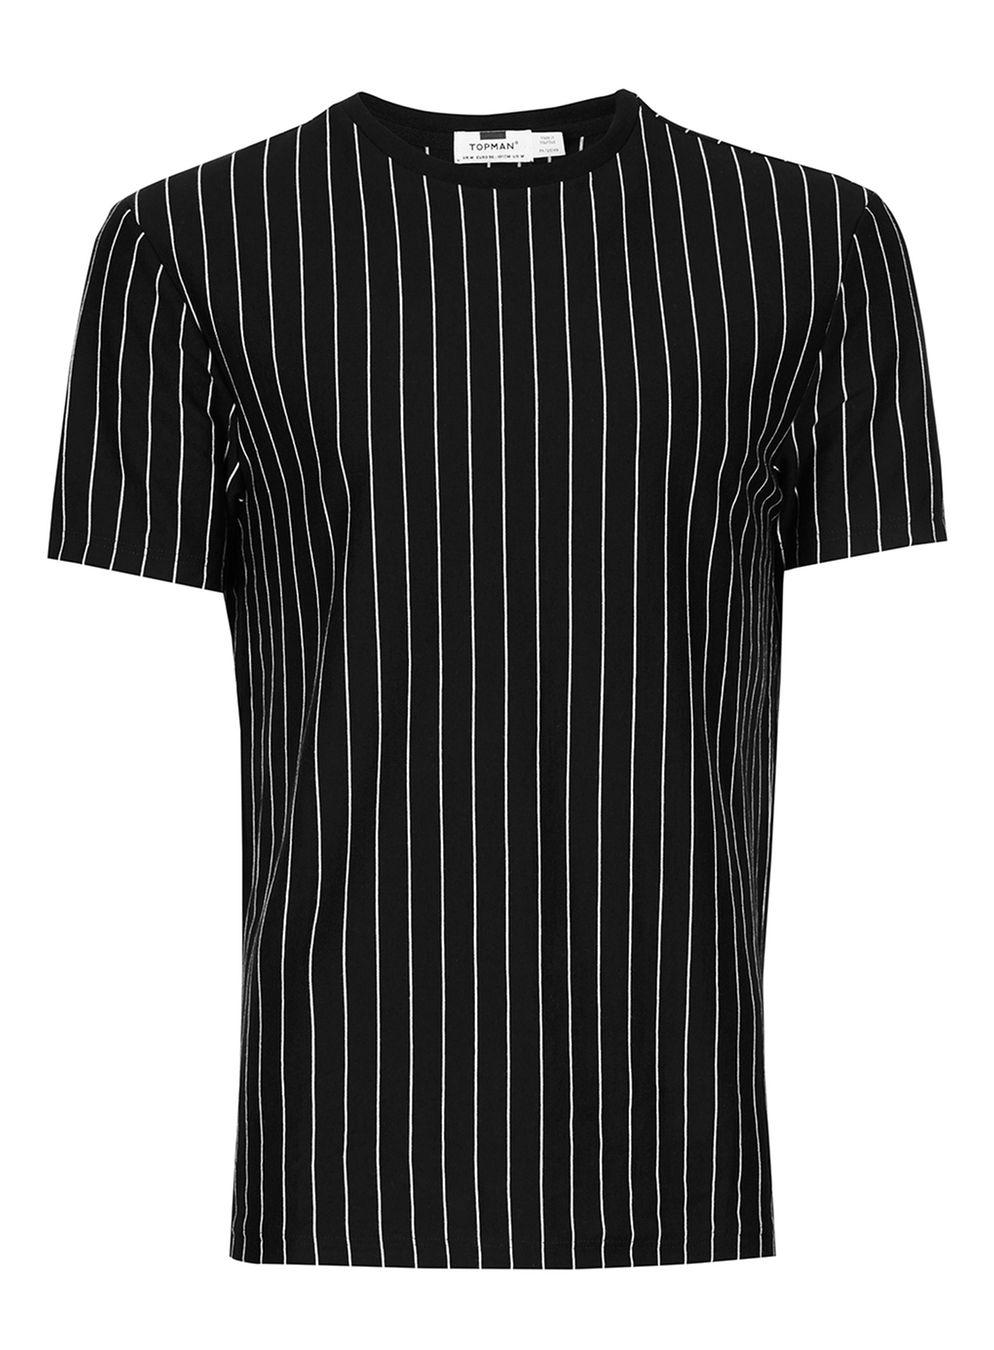 TOPMAN Cotton Black And White Vertical Stripe T-shirt for ...